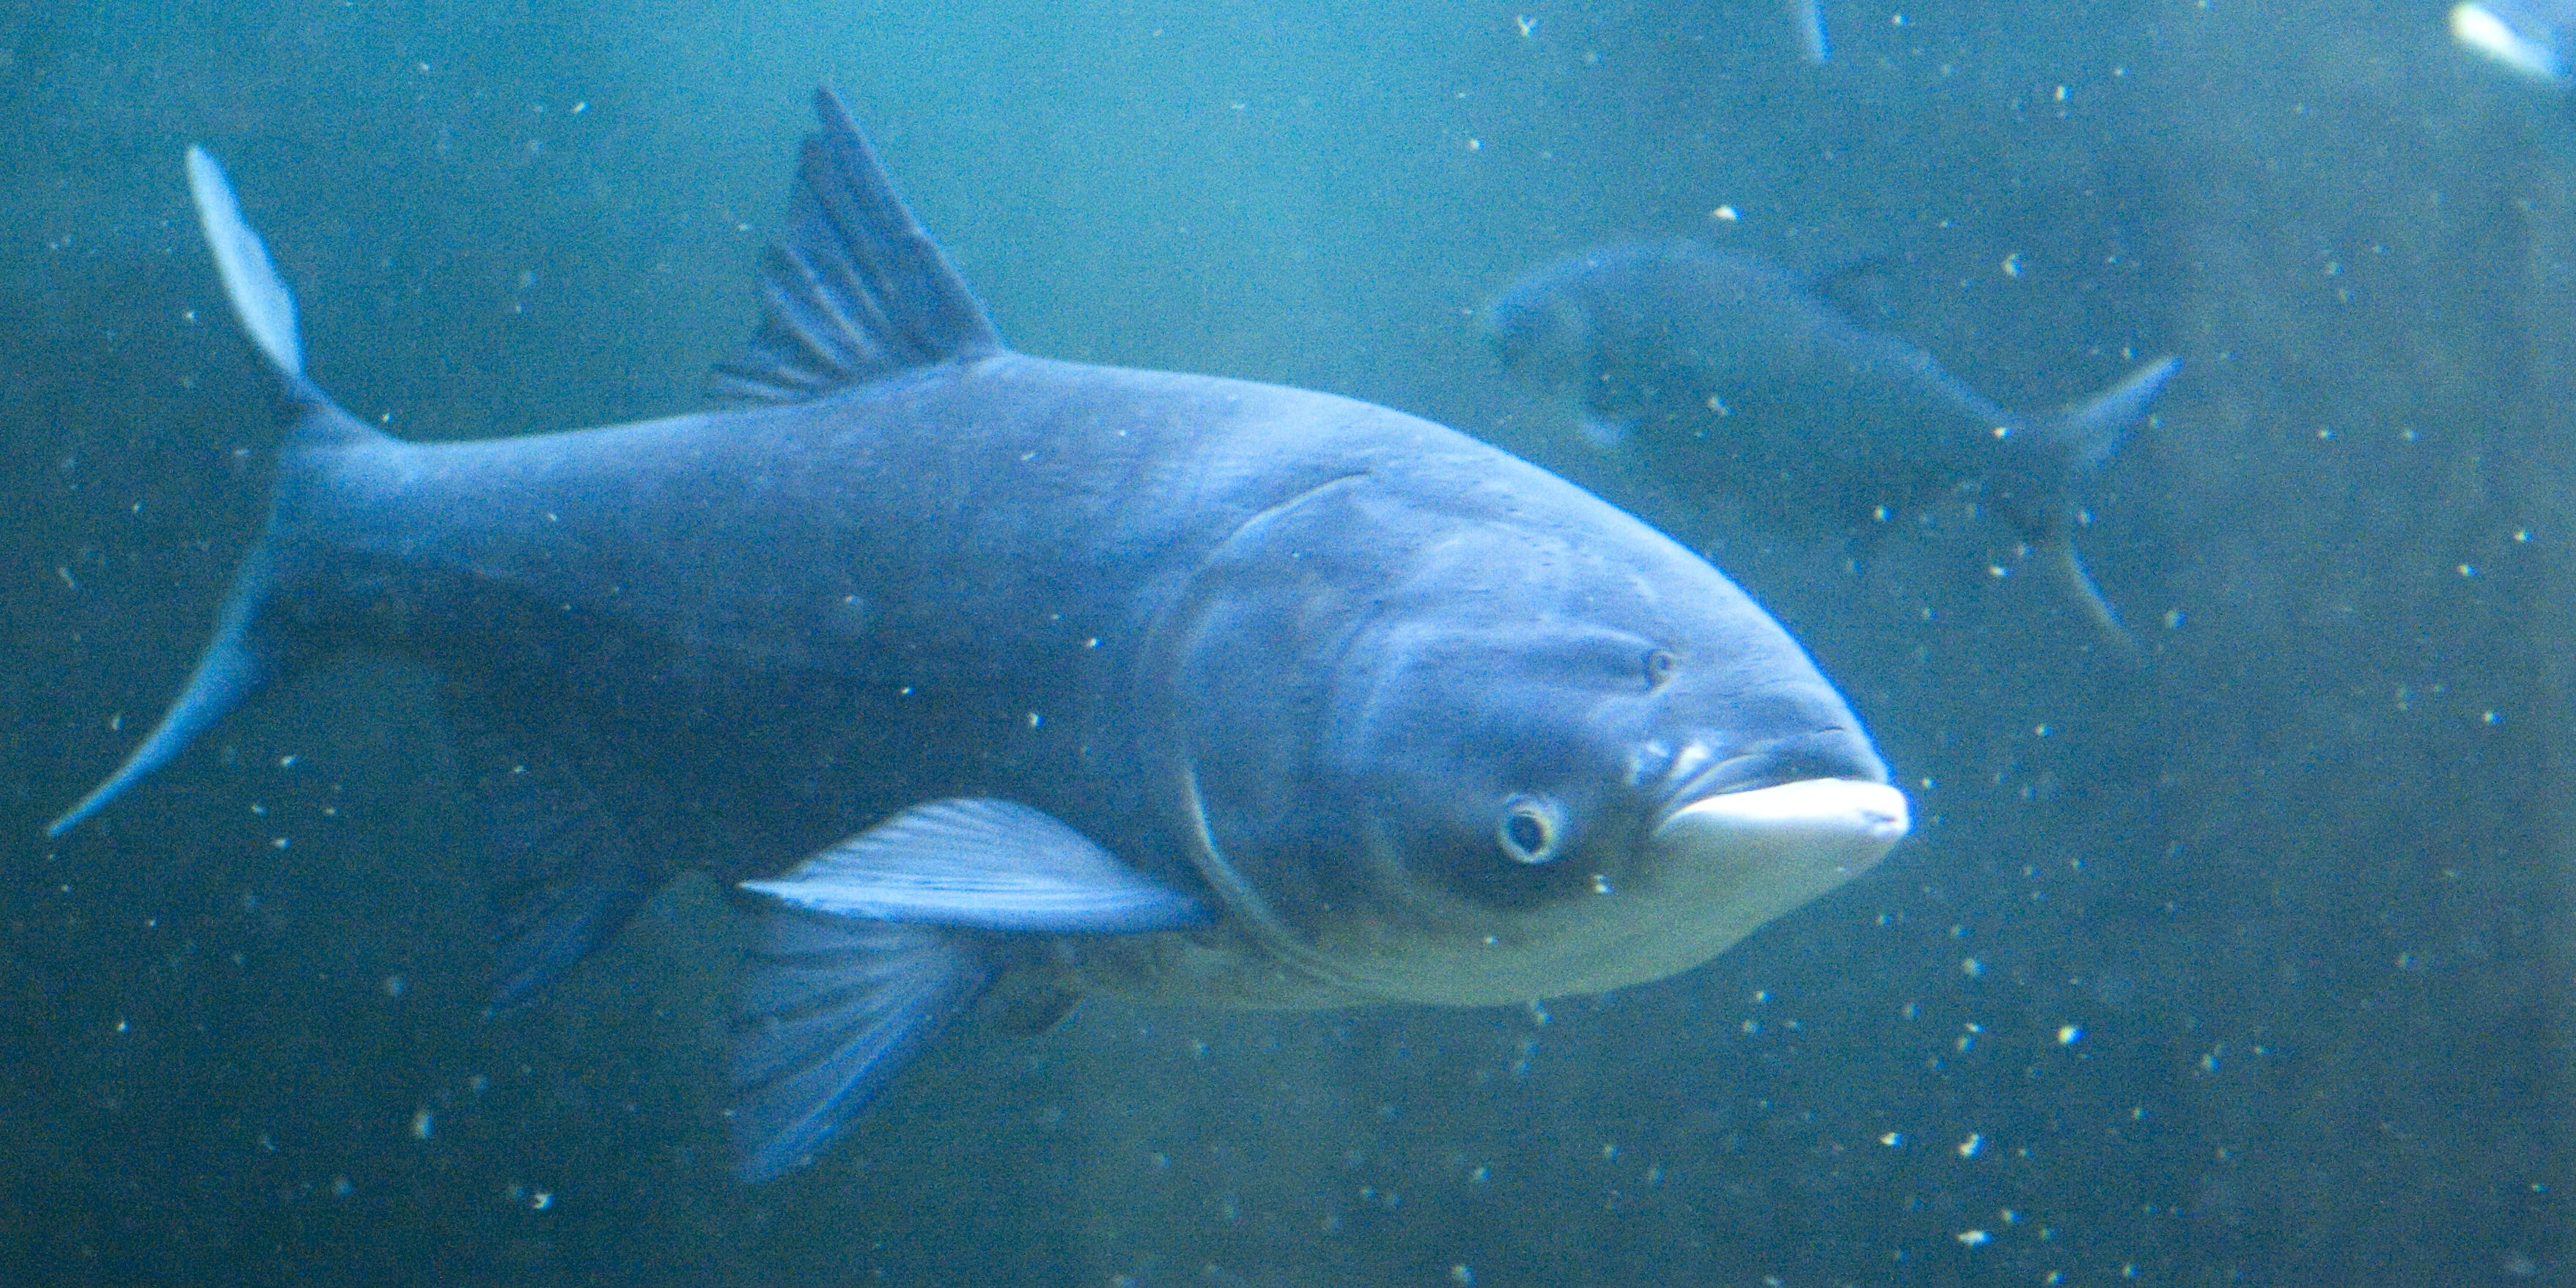 The Asian carp looks like its whole face is upside-down.